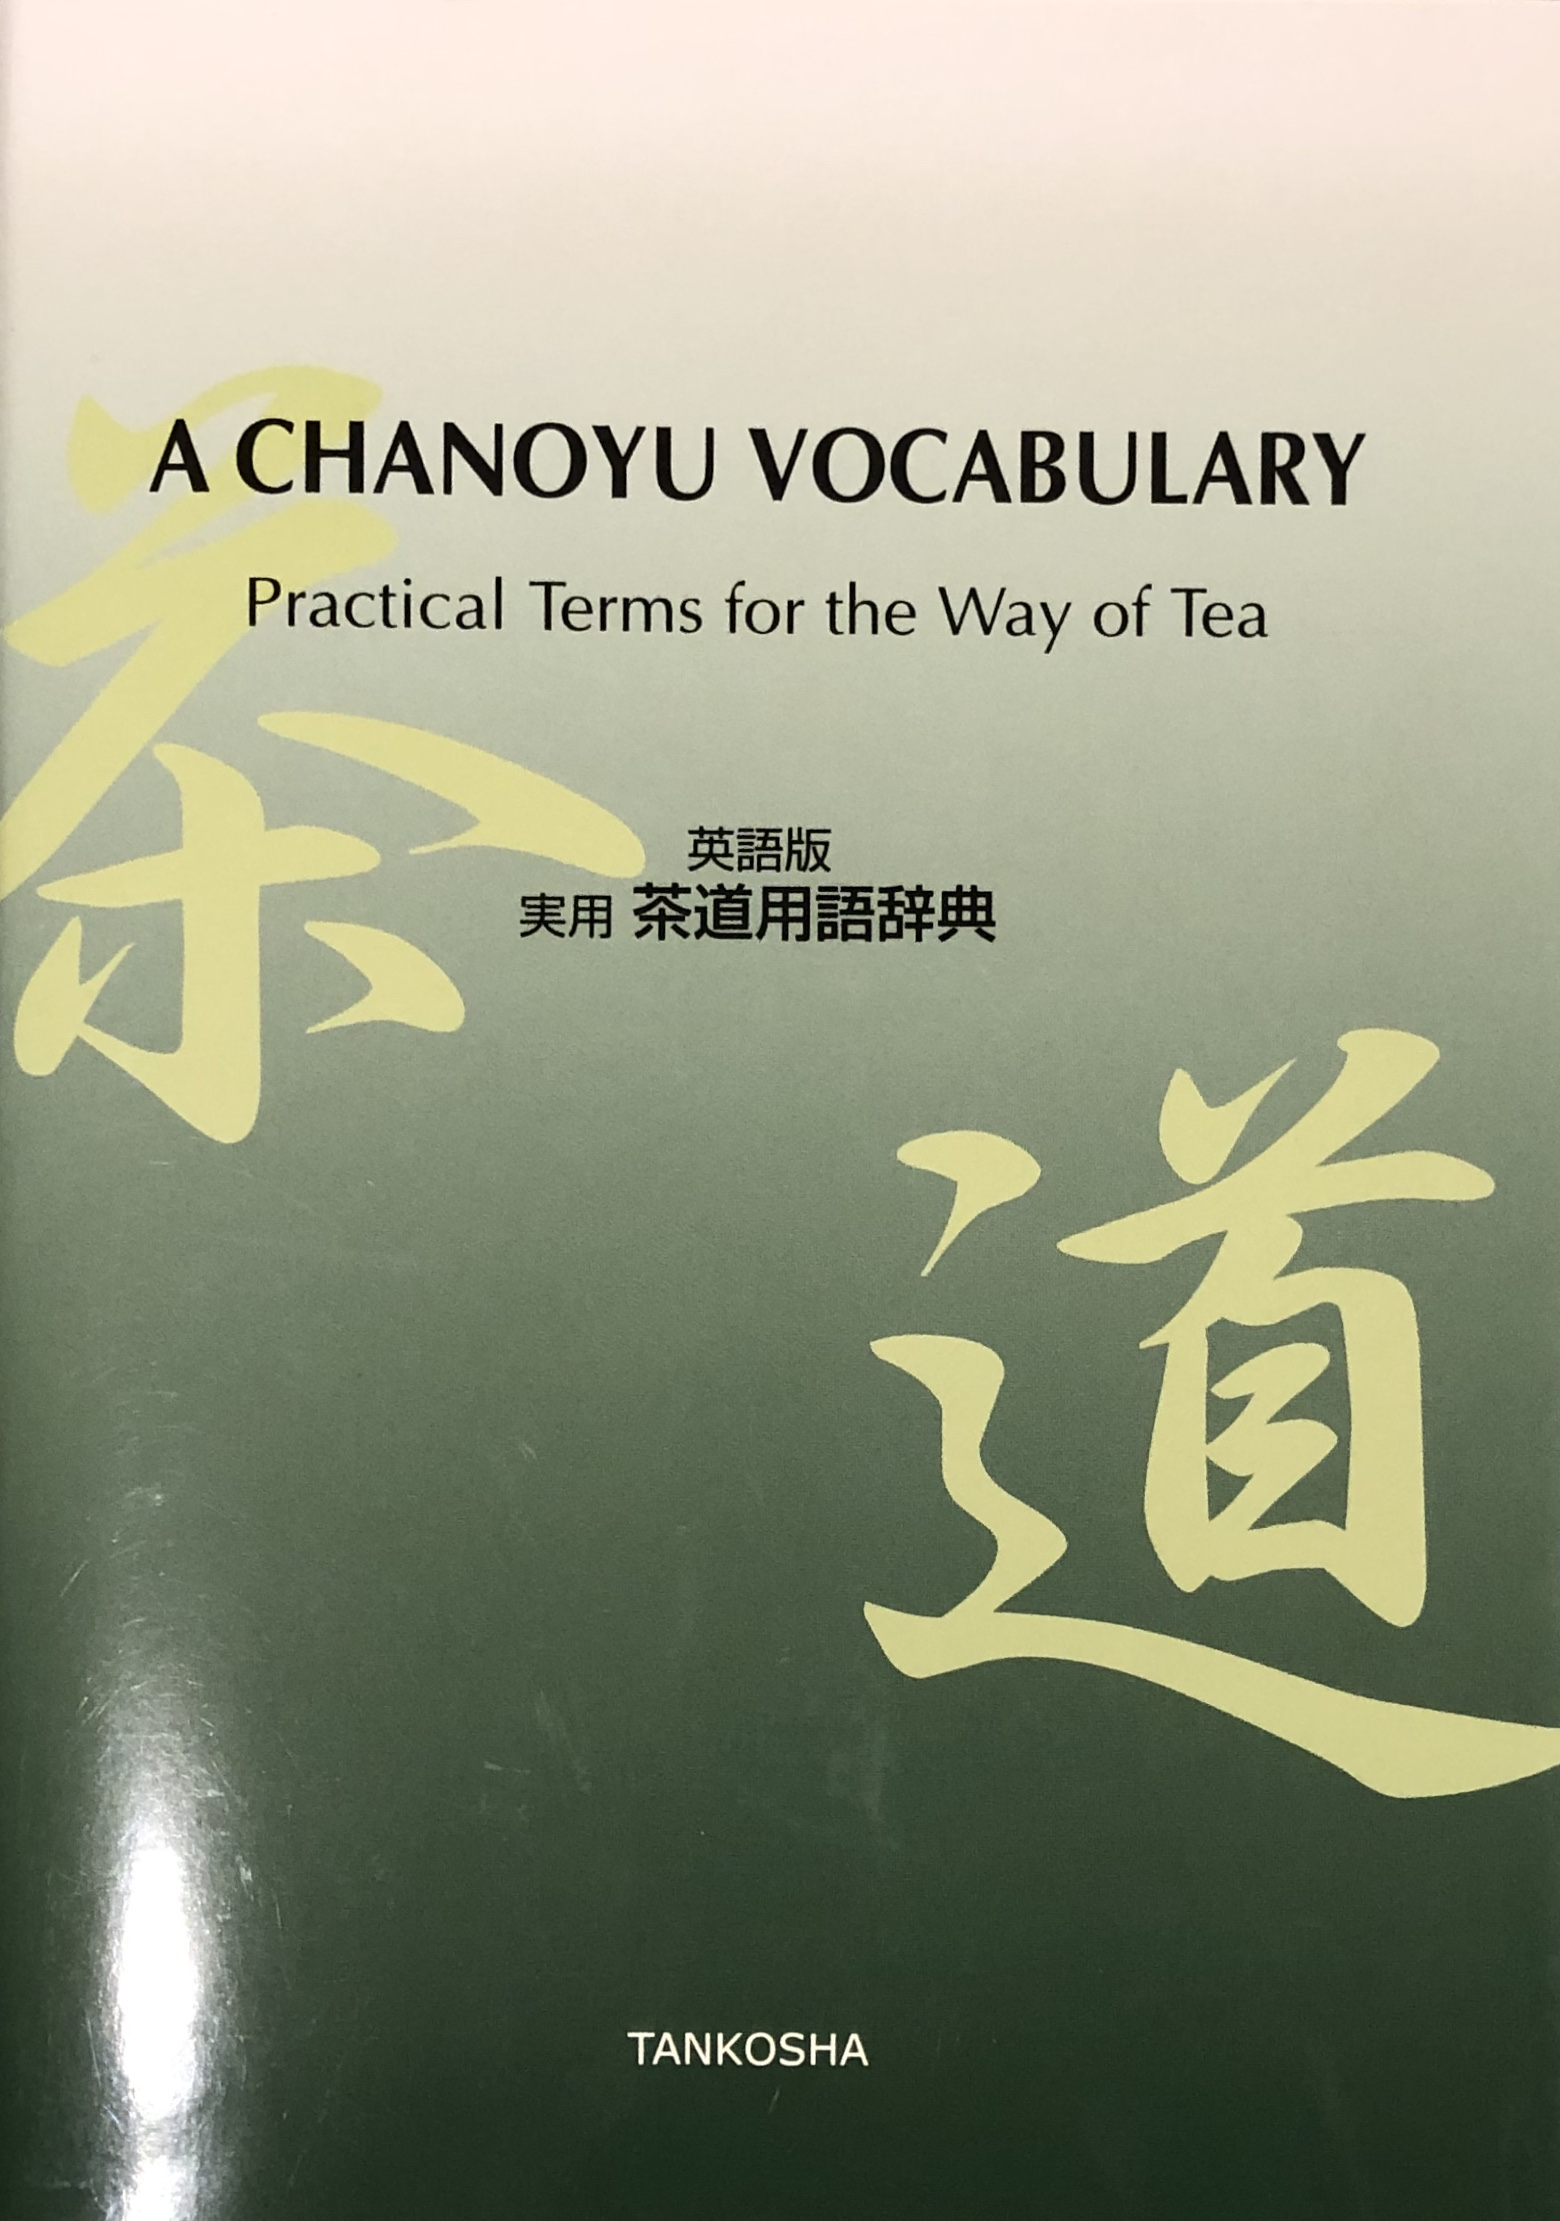 A CHANOYU VOCABULARY: Practical Terms for the Way of Tea